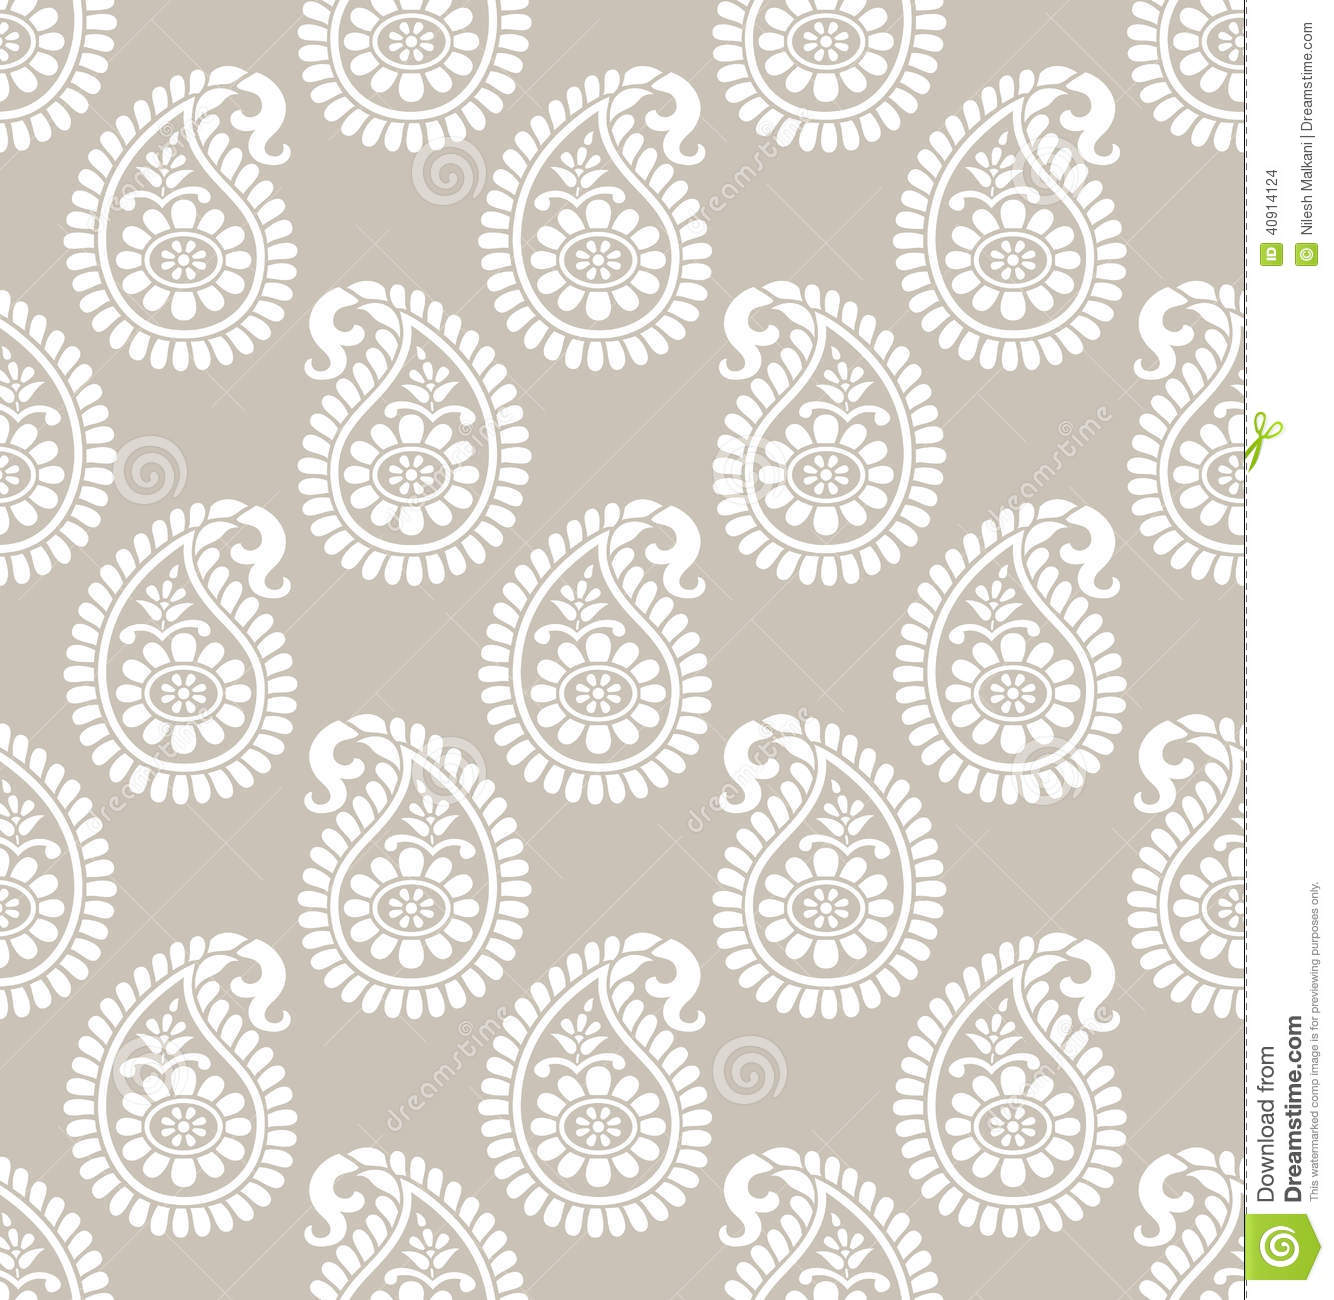 Paisley seamless designer wallpaper stock vector image for Unique wallpaper designs